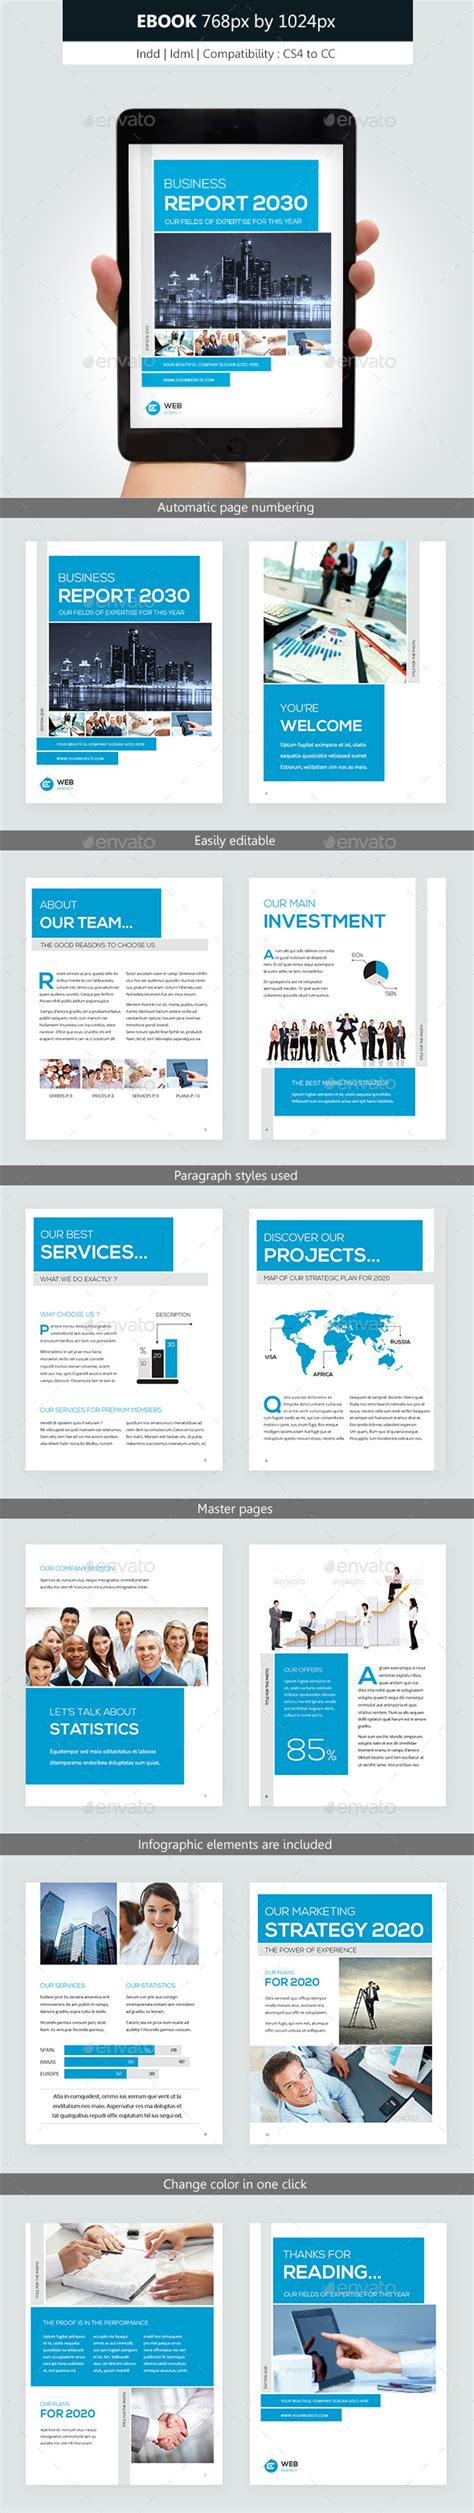 ebook design templates free corporate ebook template design digital books epublishing